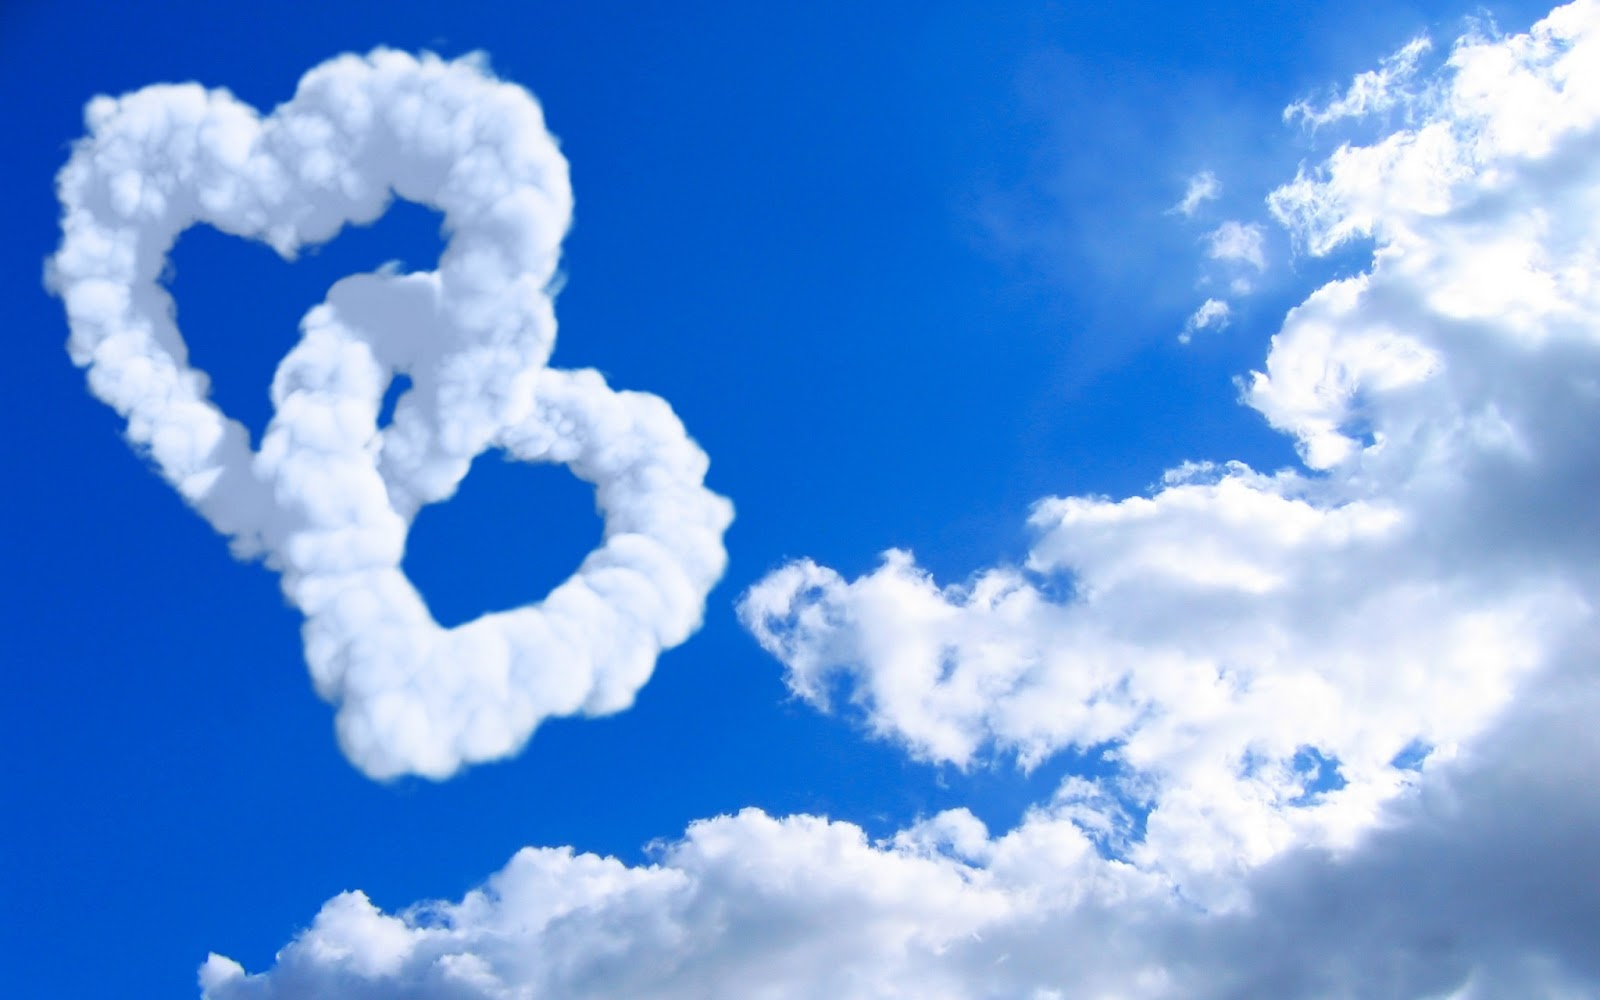 Love Images Desktop Wallpaper : Free Wallpaper Dekstop: 3d love with clouds wallpaper, wallpaper for desktop